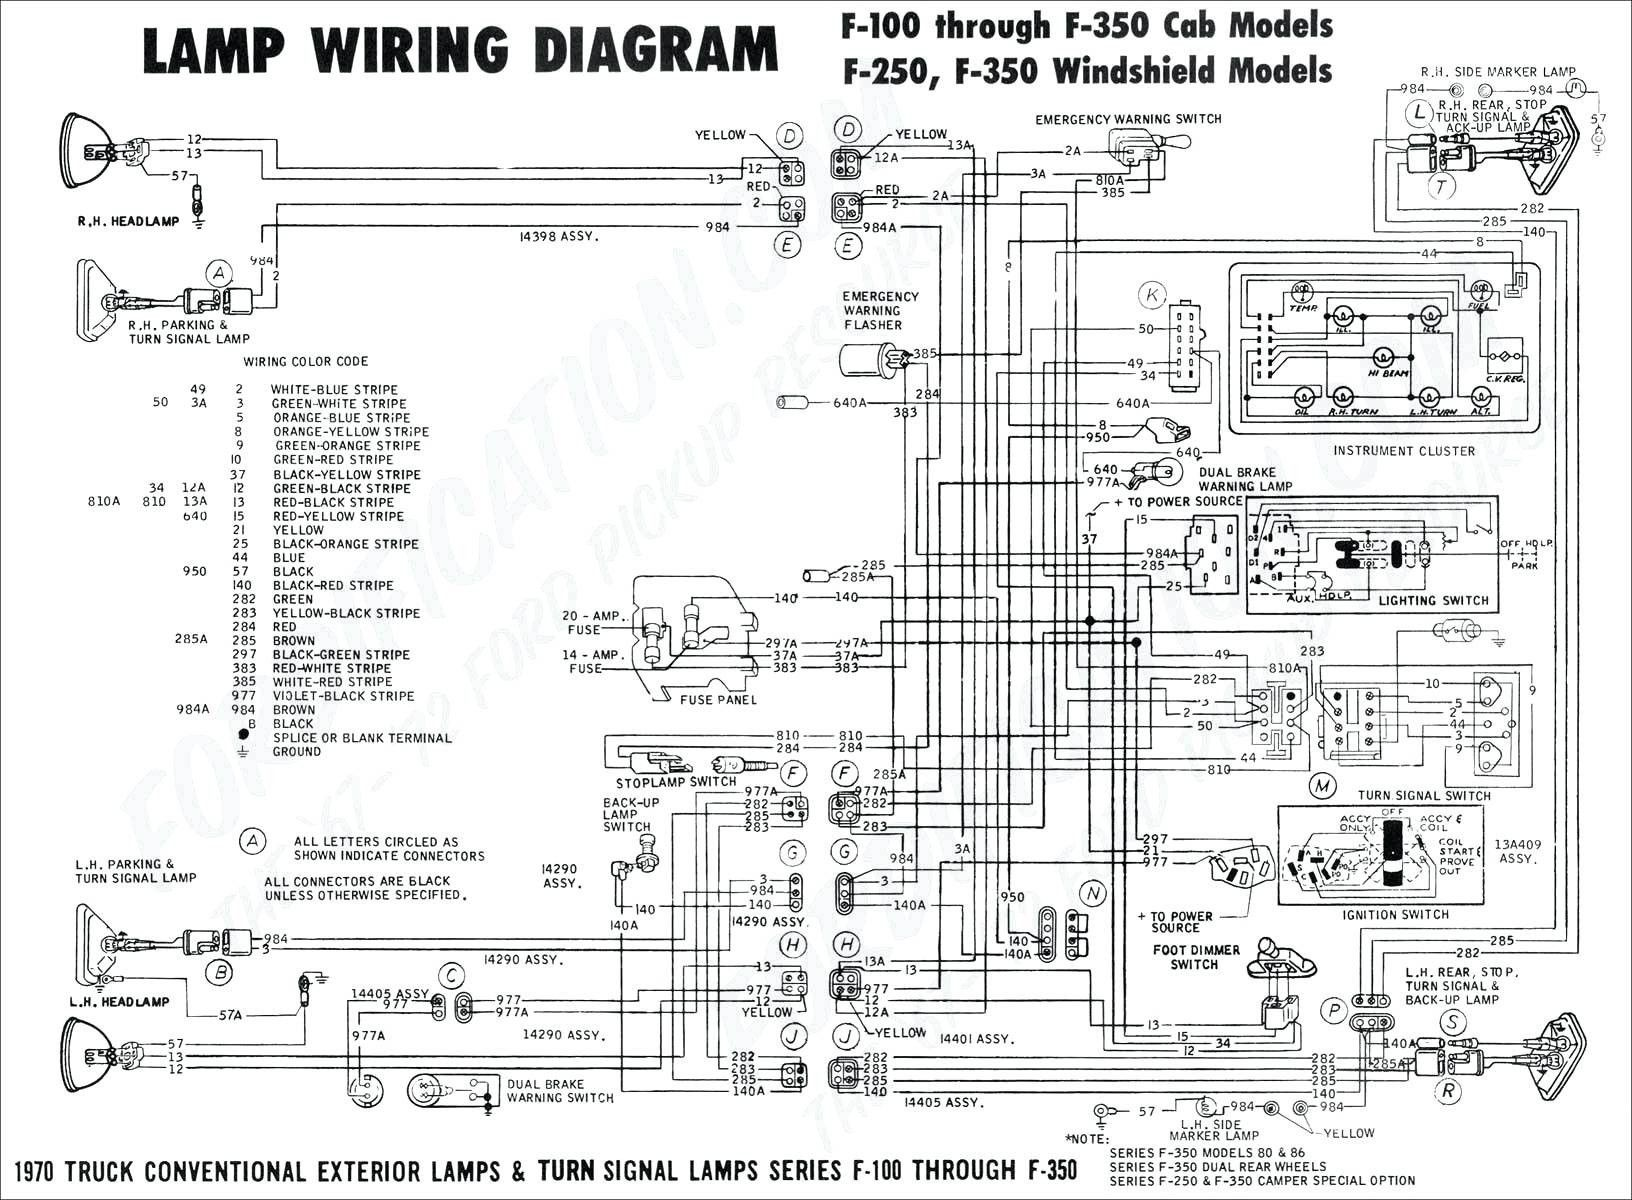 New Wiring Diagram Symbols Hvac Diagrams Digramssample